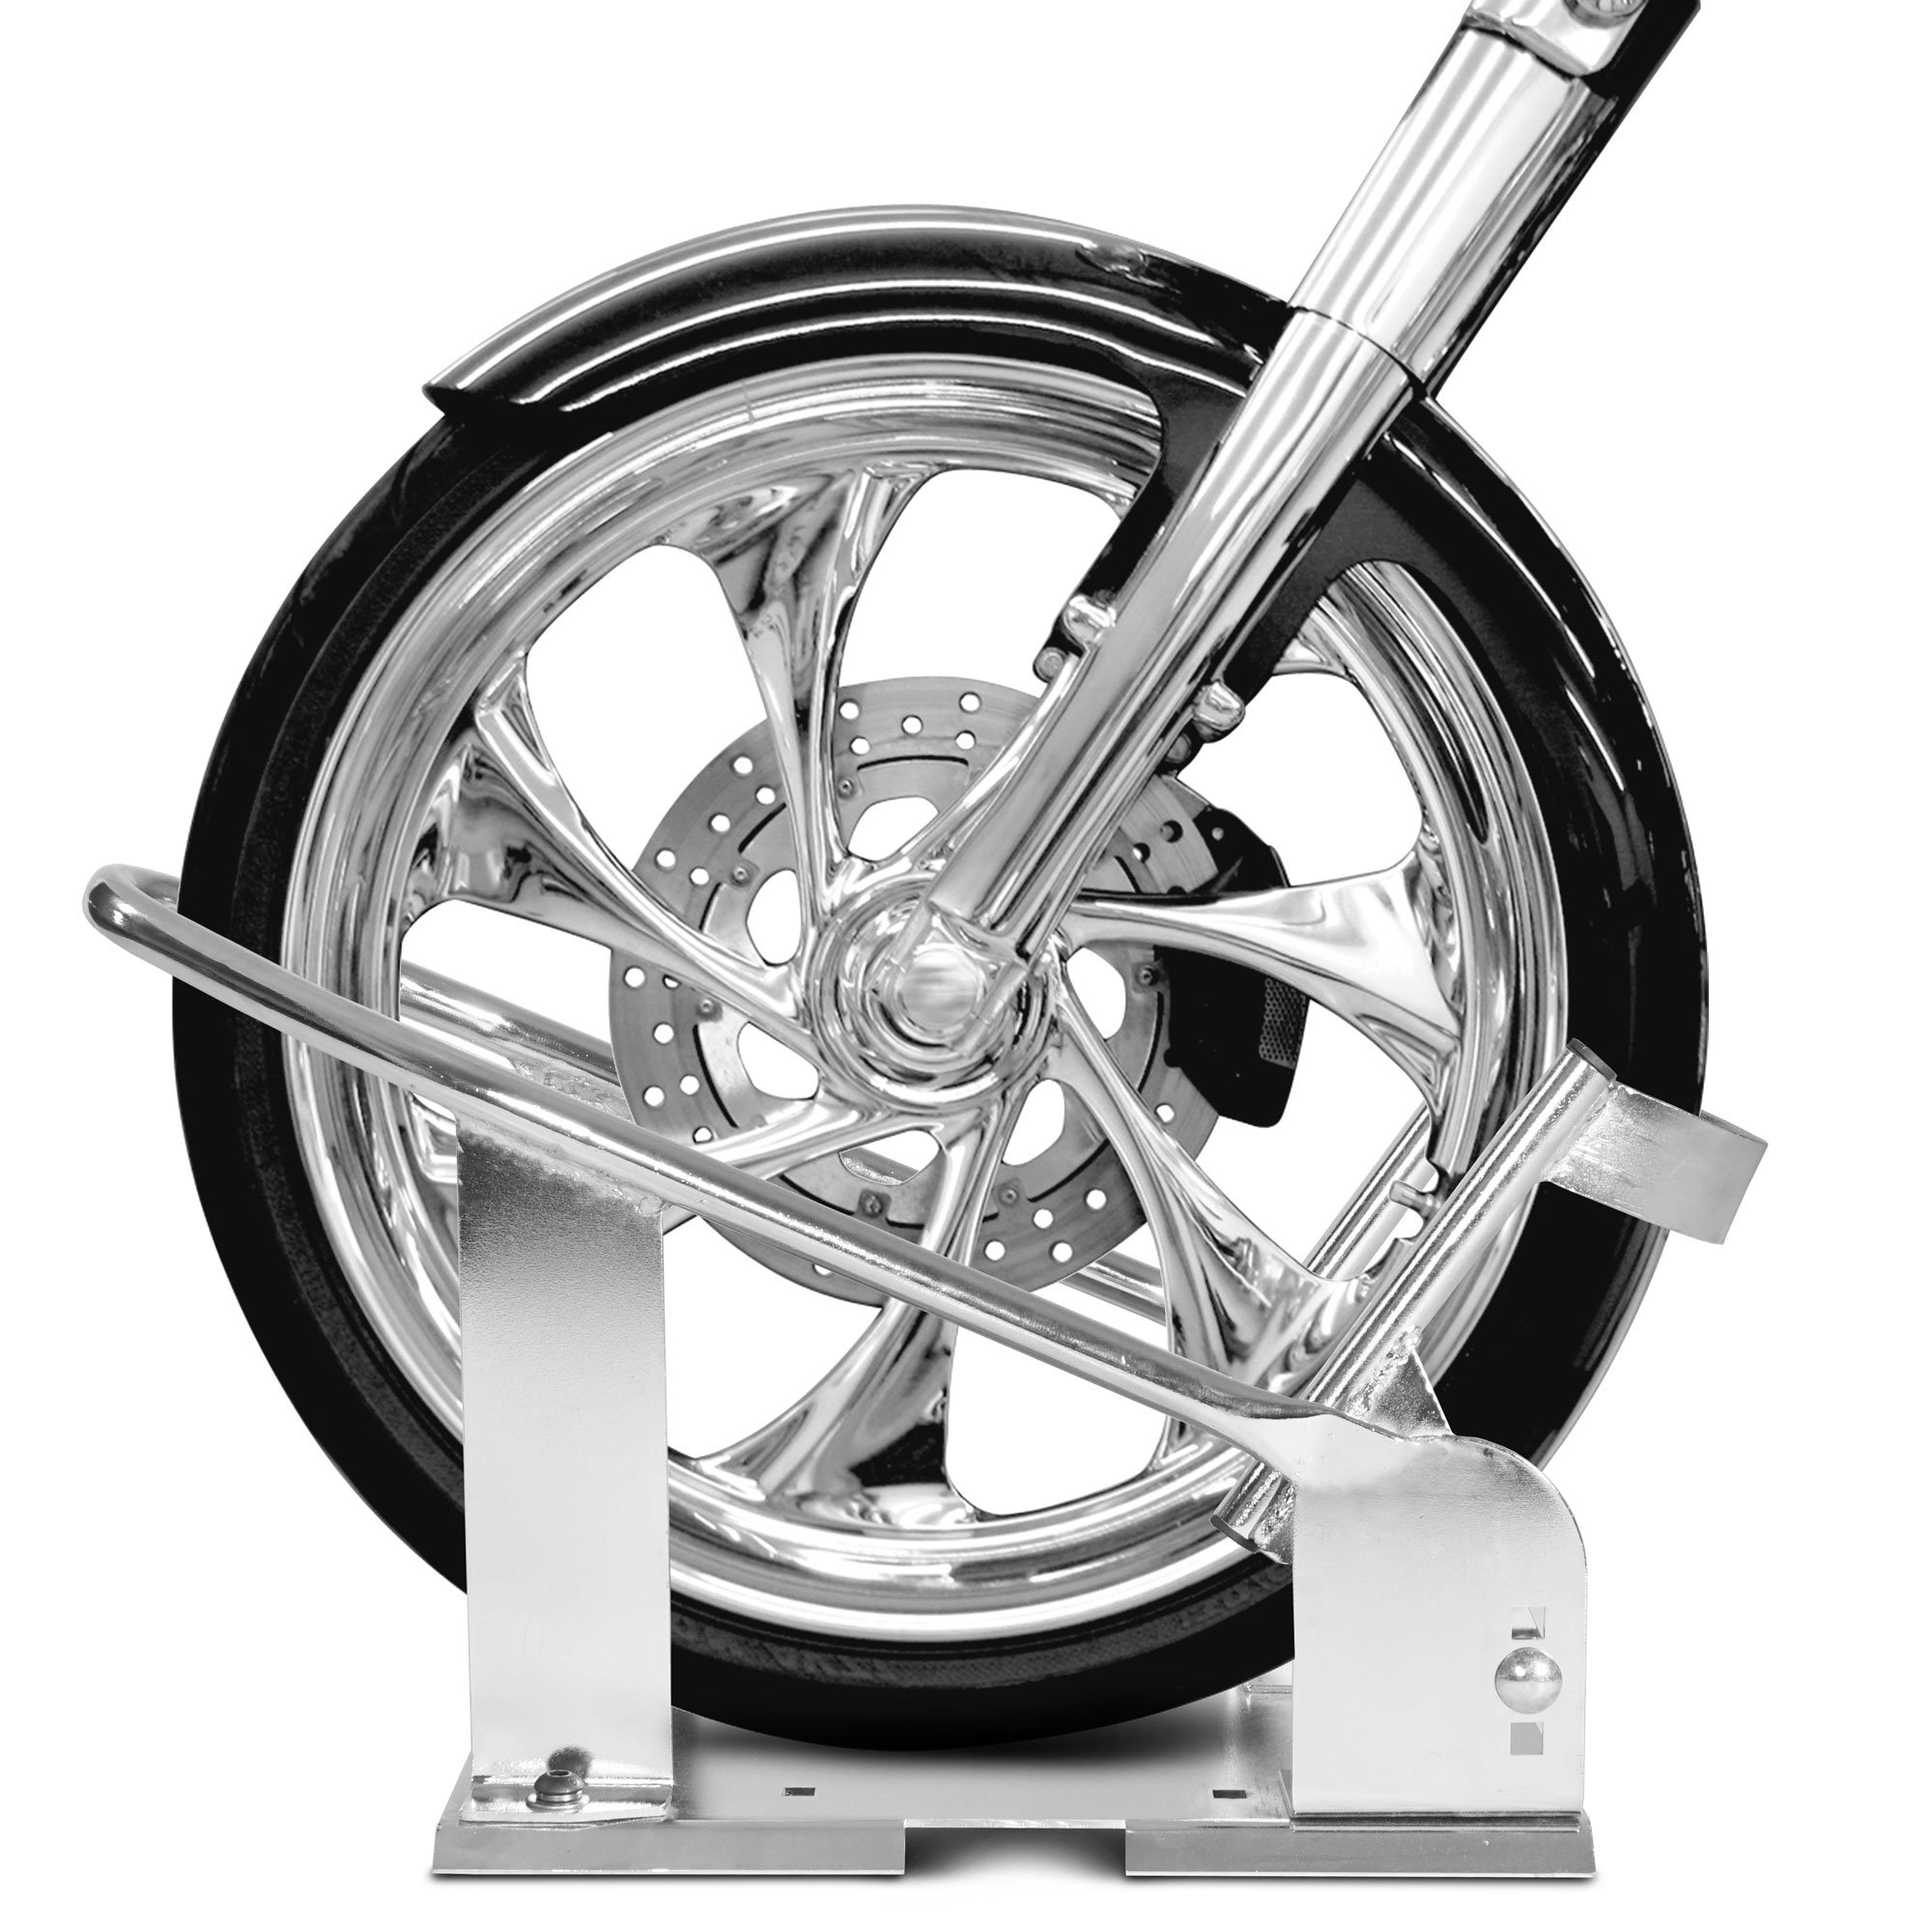 3 Position Adjustable Chrome Motorcycle Wheel Chock Stand Truck Trailer Mount by Titan Ramps (Image #6)